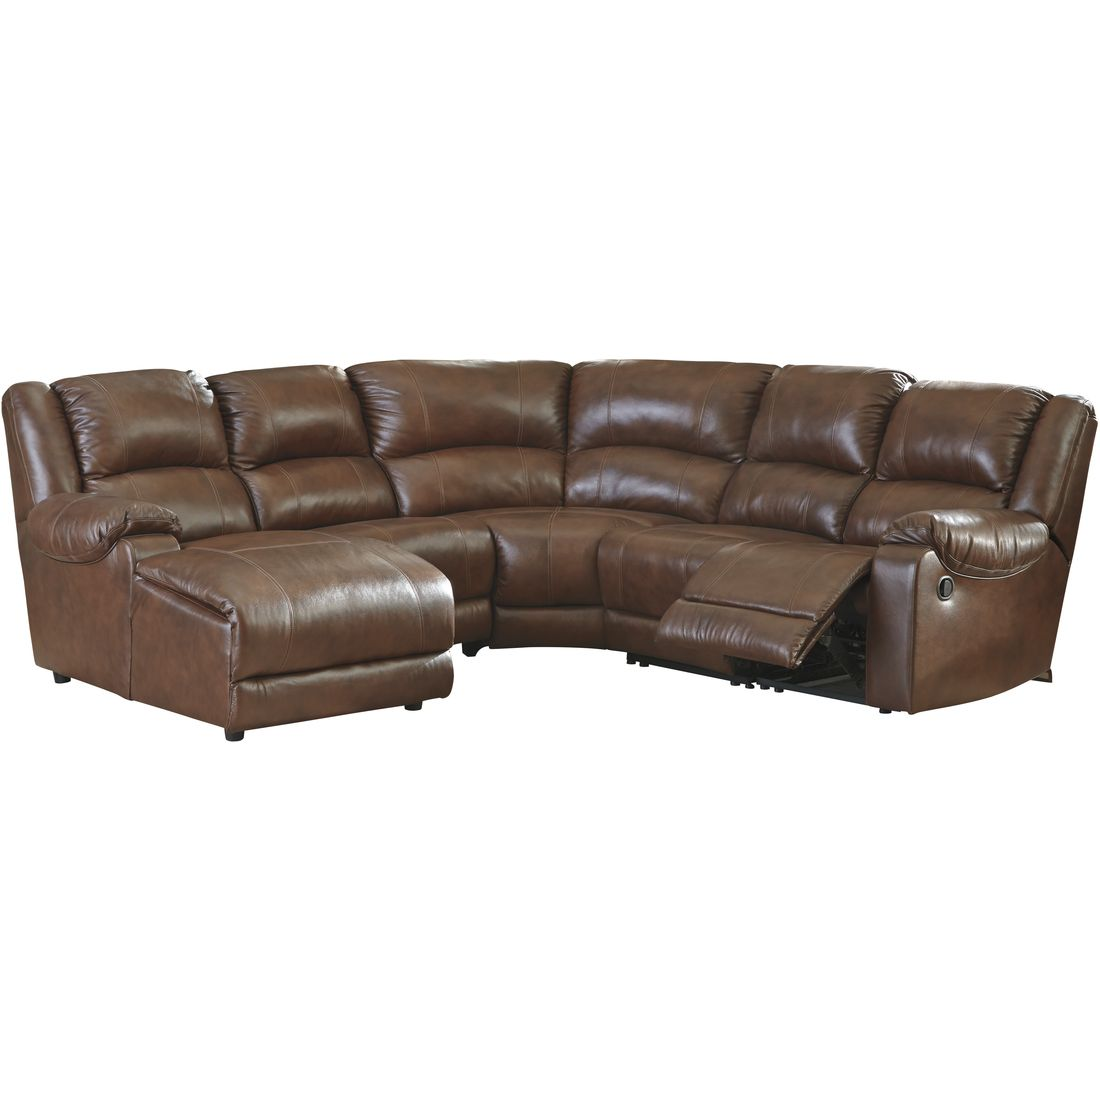 furnitureusa dune amazing pewter for jessa fascinating sectional on home place homephoneinc